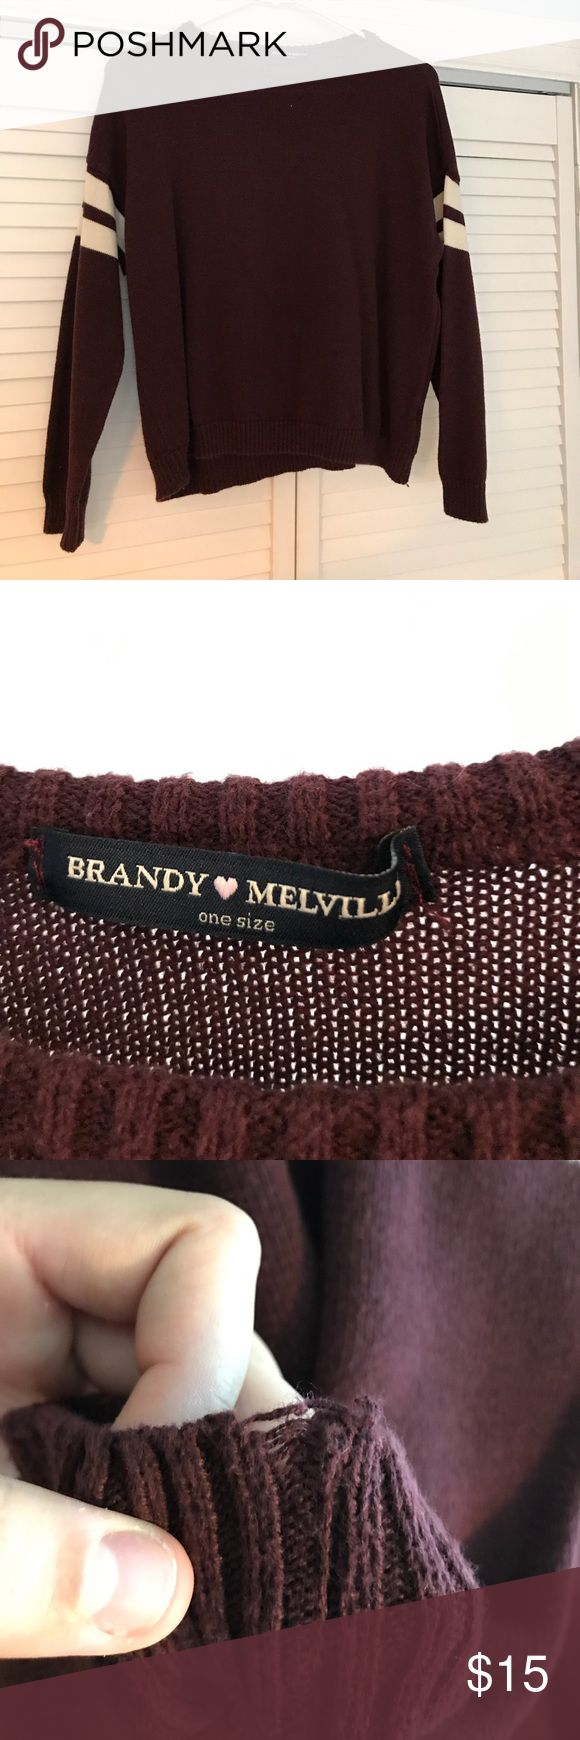 BRANDY MELVILLE SWEATER •maroon sweater w/ white varsity stripes.                           •about 21 inches in length.                                                  •in great condition, small sign of wear on one sleeve (shown in picture). Brandy Melville Sweaters Crew & Scoop Necks